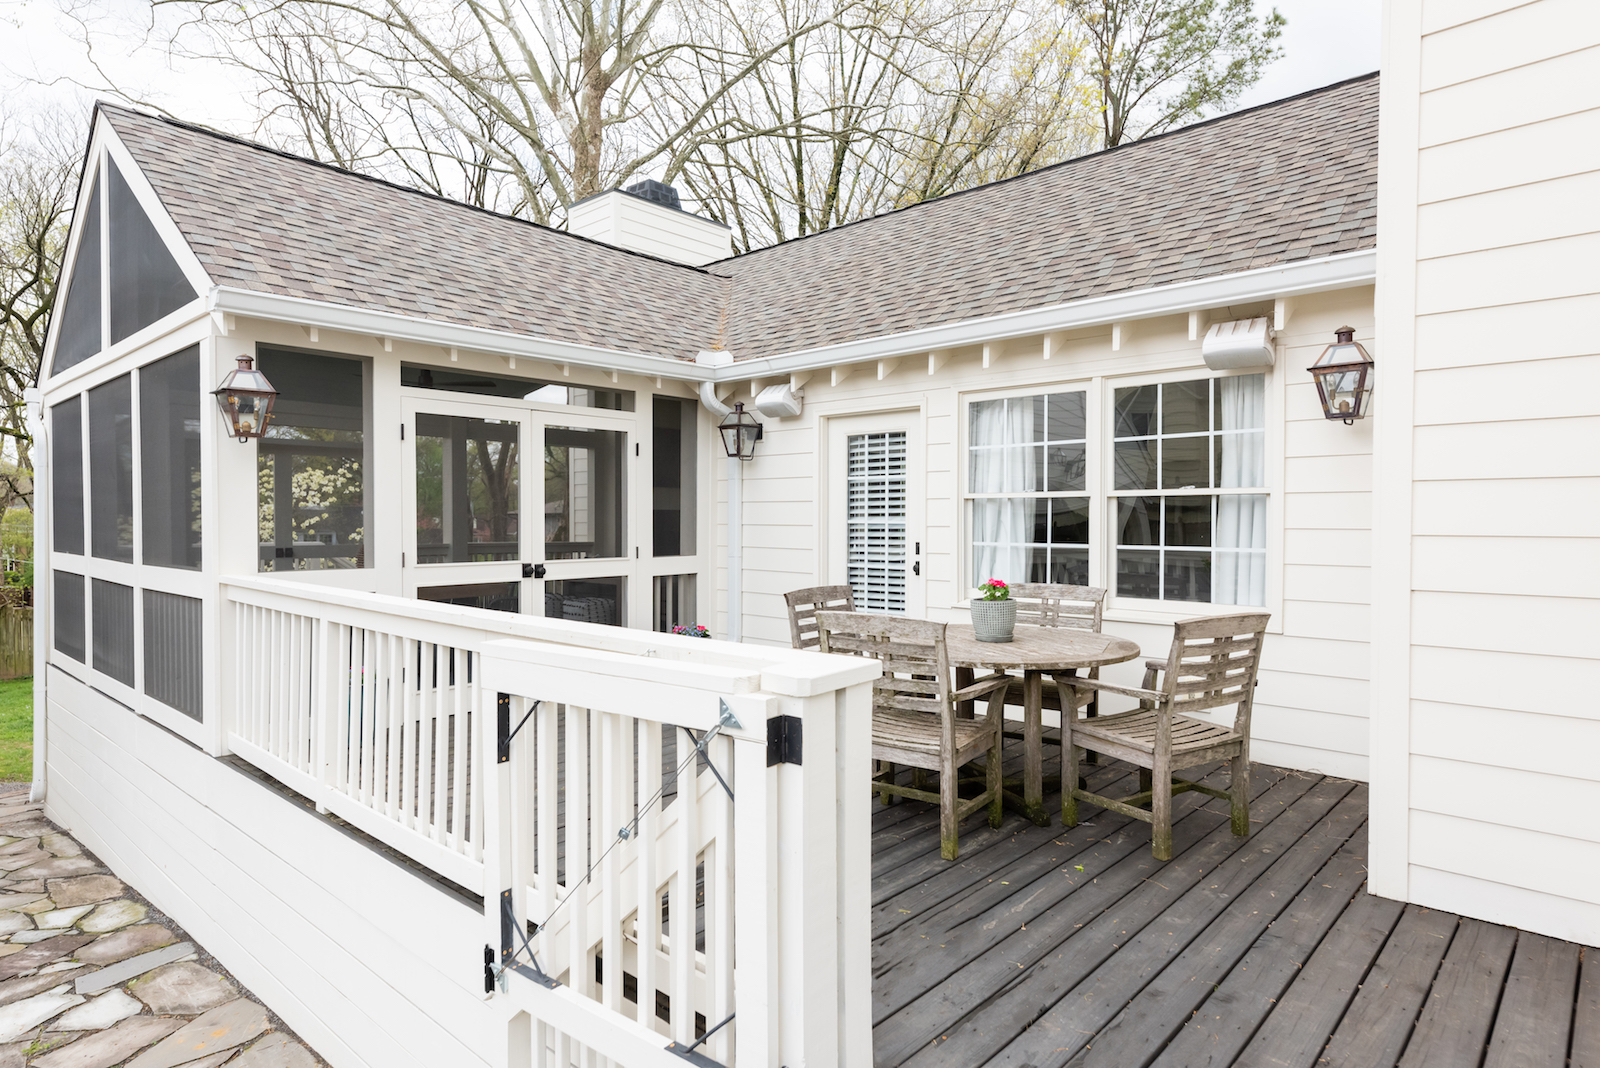 Outdoor dining area in renovated Nashville home